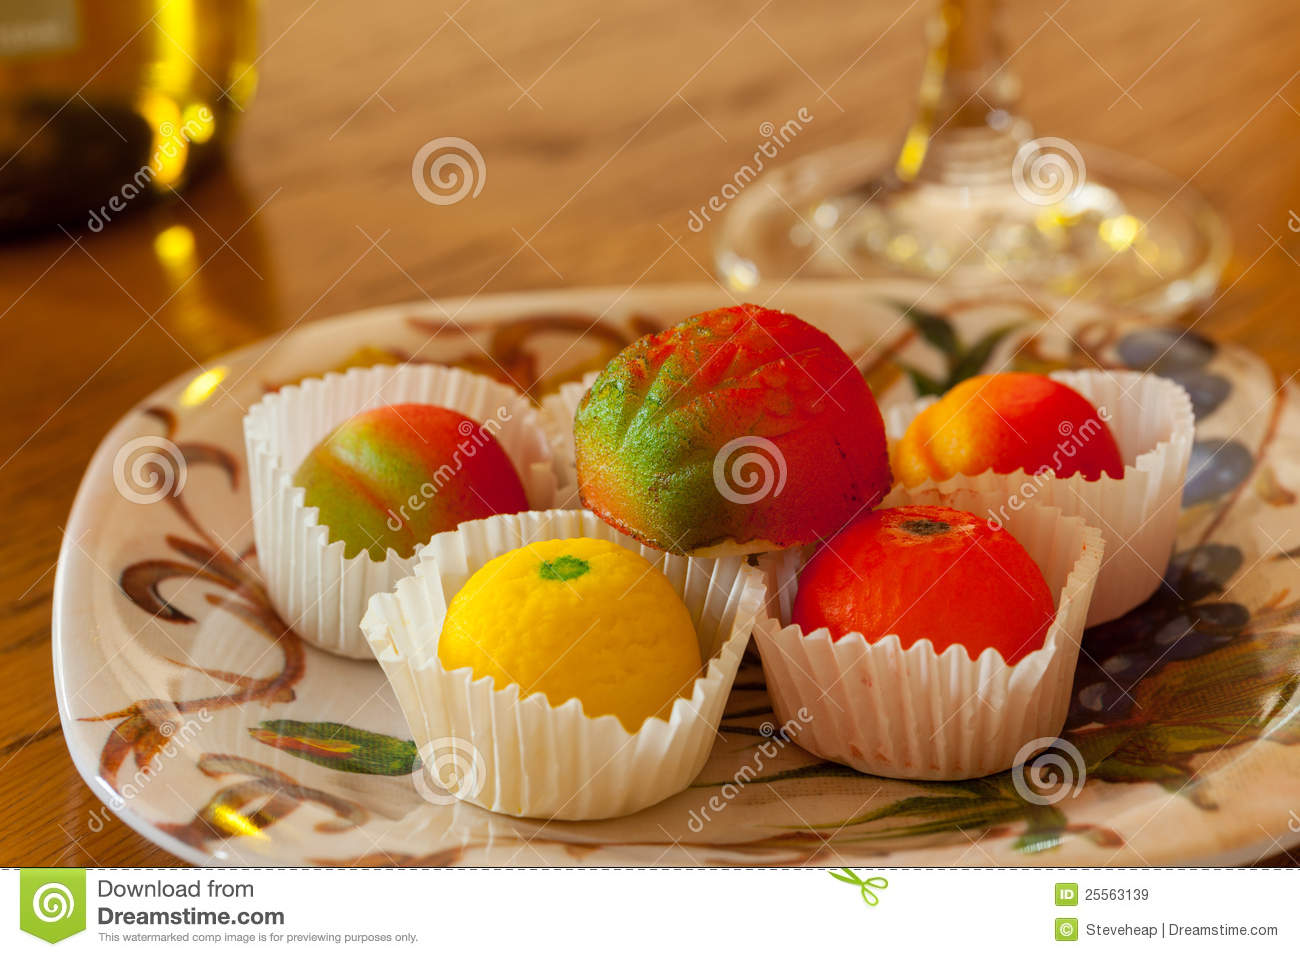 Fruit shaped candies in macro image of marzipan sweets on table with    Mazapan Fruit